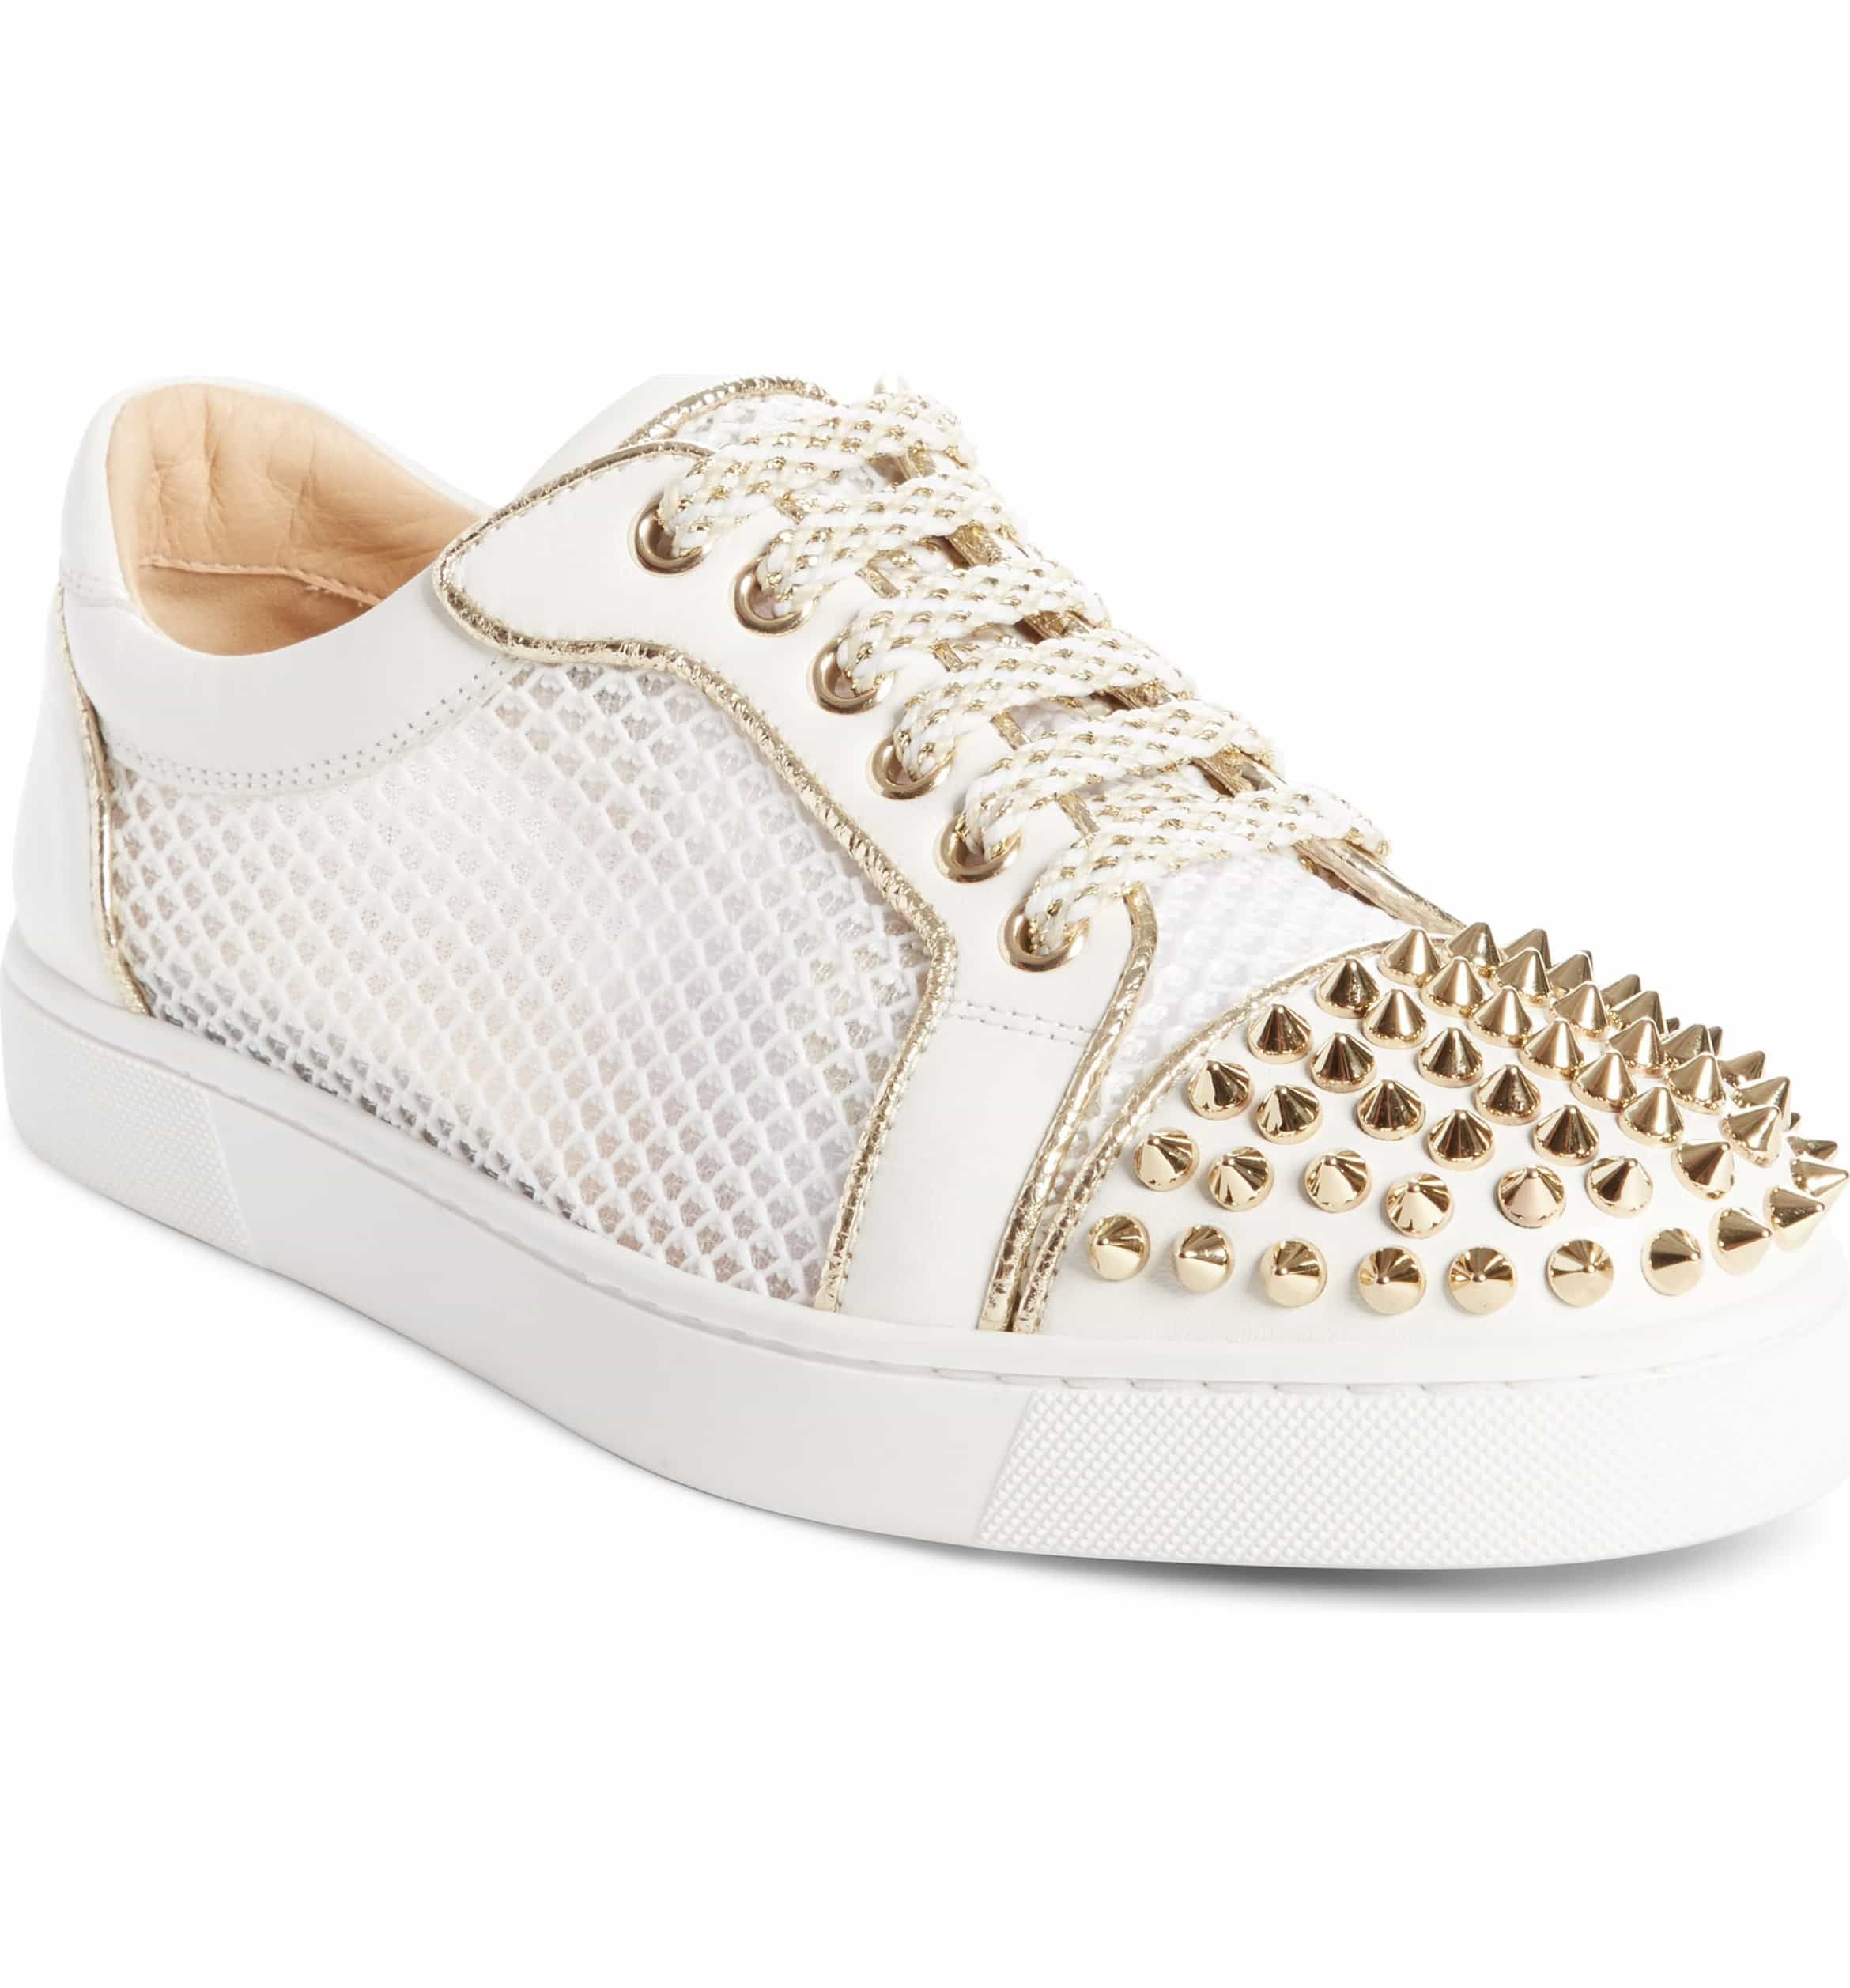 58763726260 Vieira Spiked Low Top Sneaker, Main, color, LATTE/ LIGHT GOLD ...